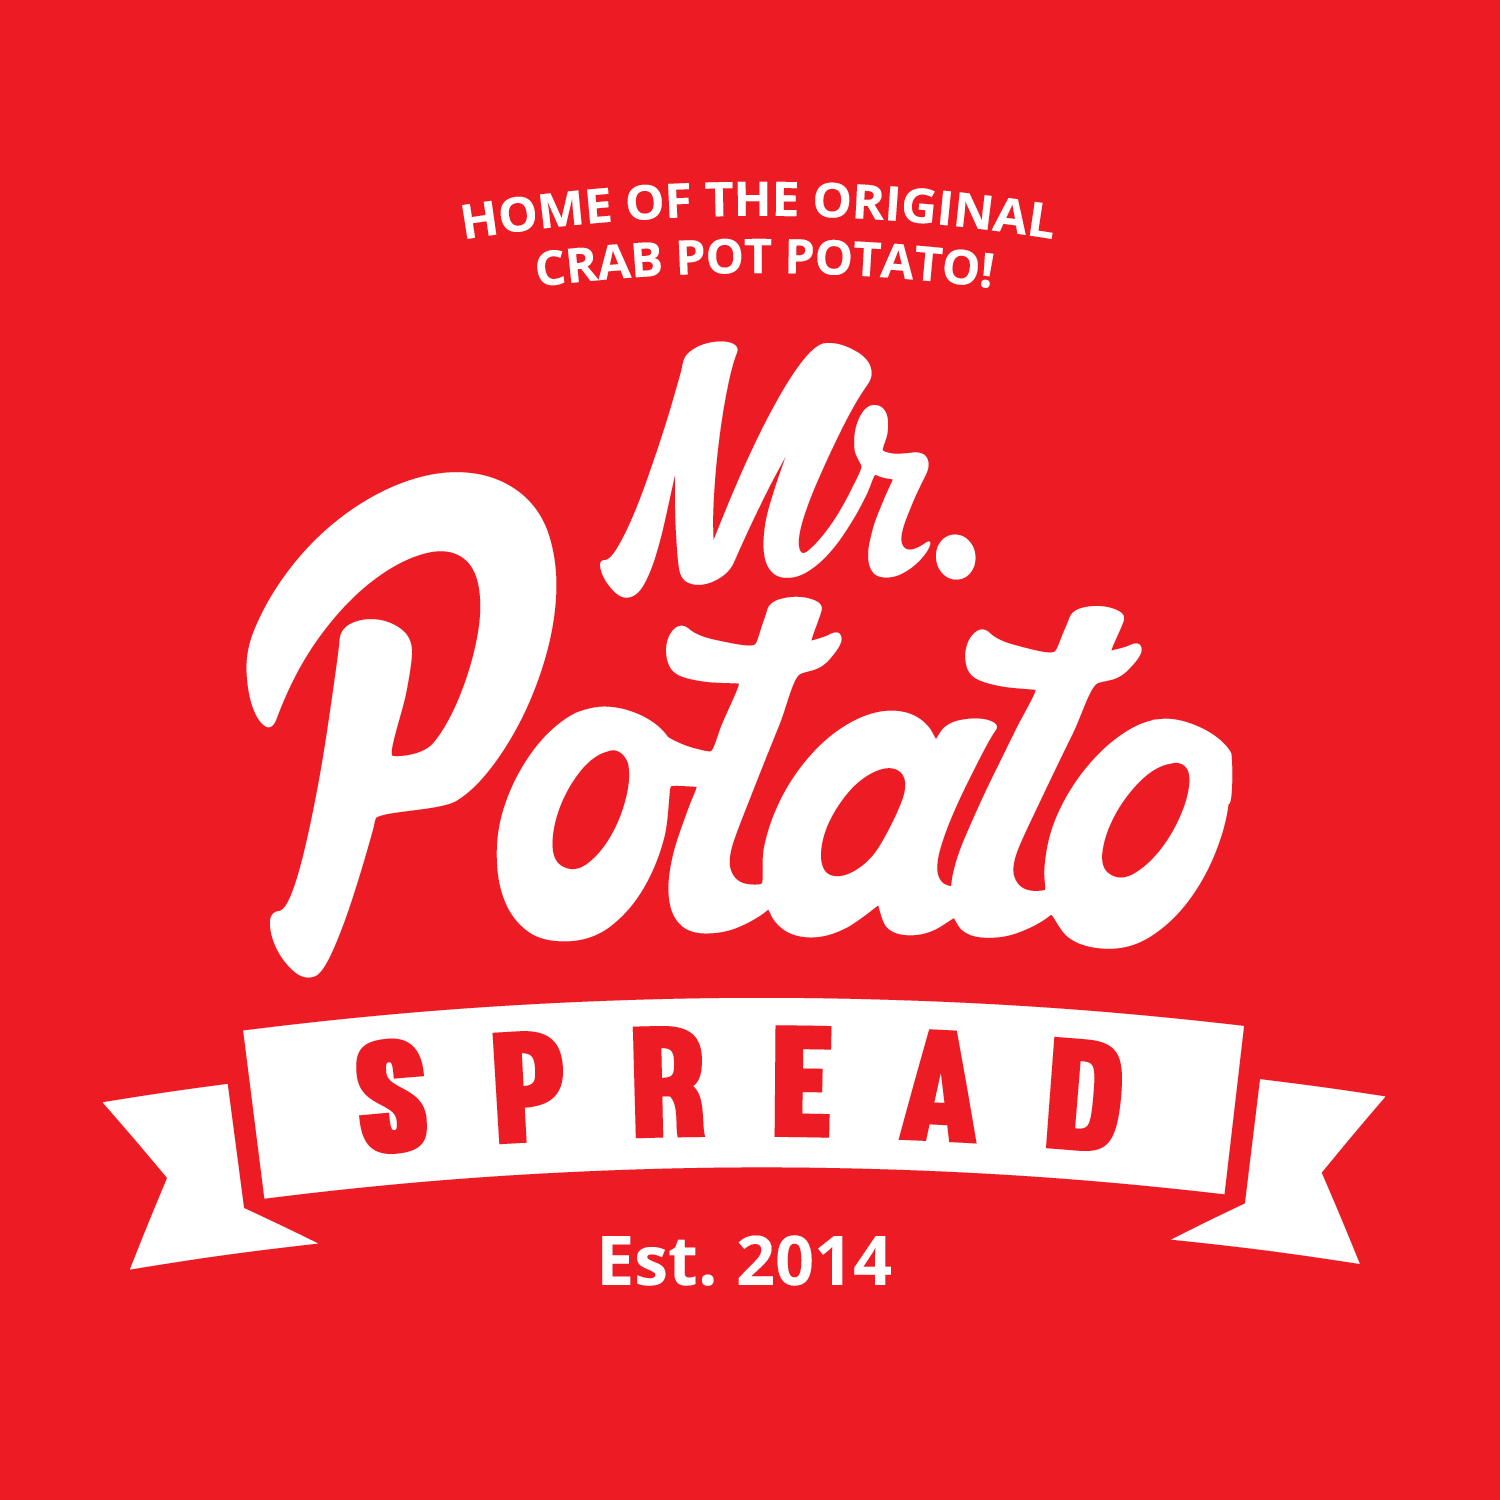 Mr. Potato Spread